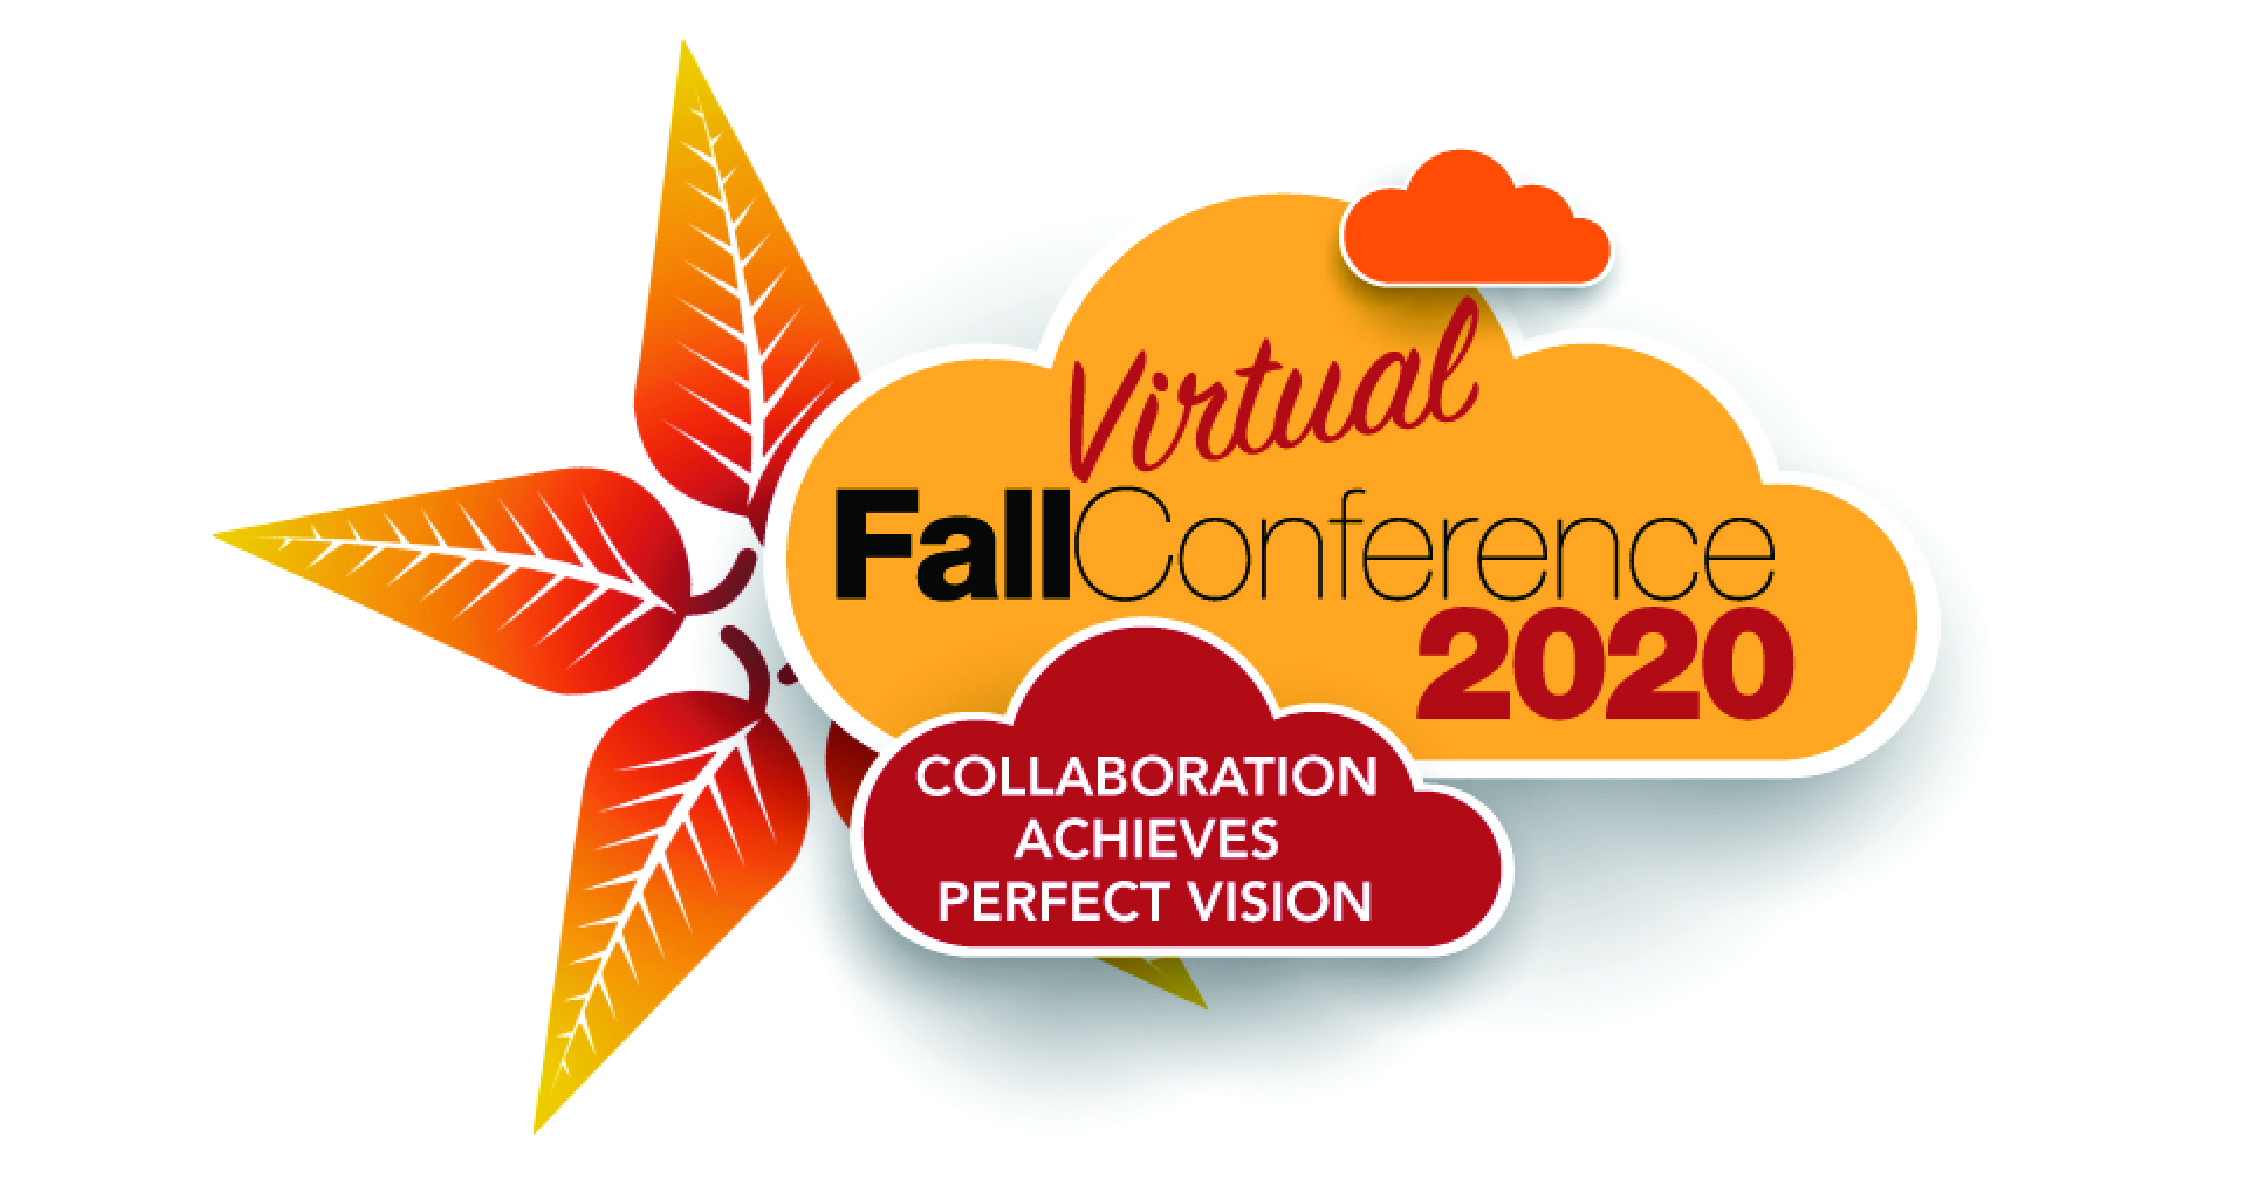 Haney's Dan Haney and Stephanie Love to Speak at FTA's Virtual Fall Conference 2020